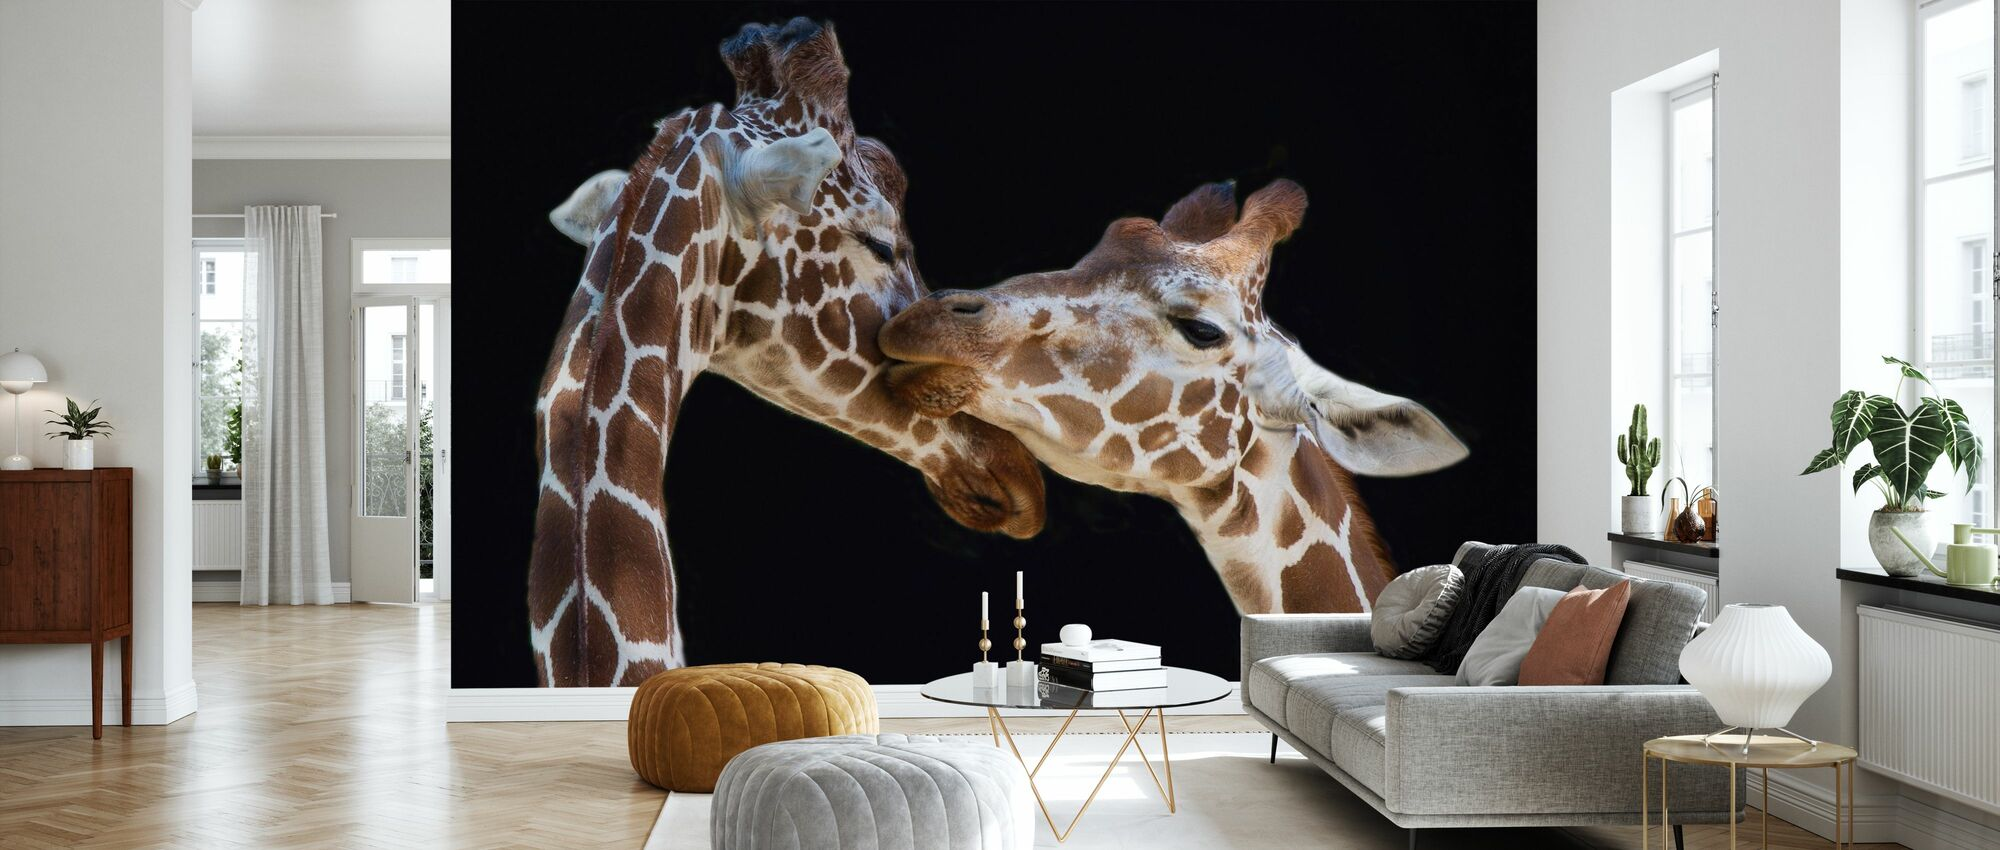 Giraffes Kissing - Wallpaper - Living Room